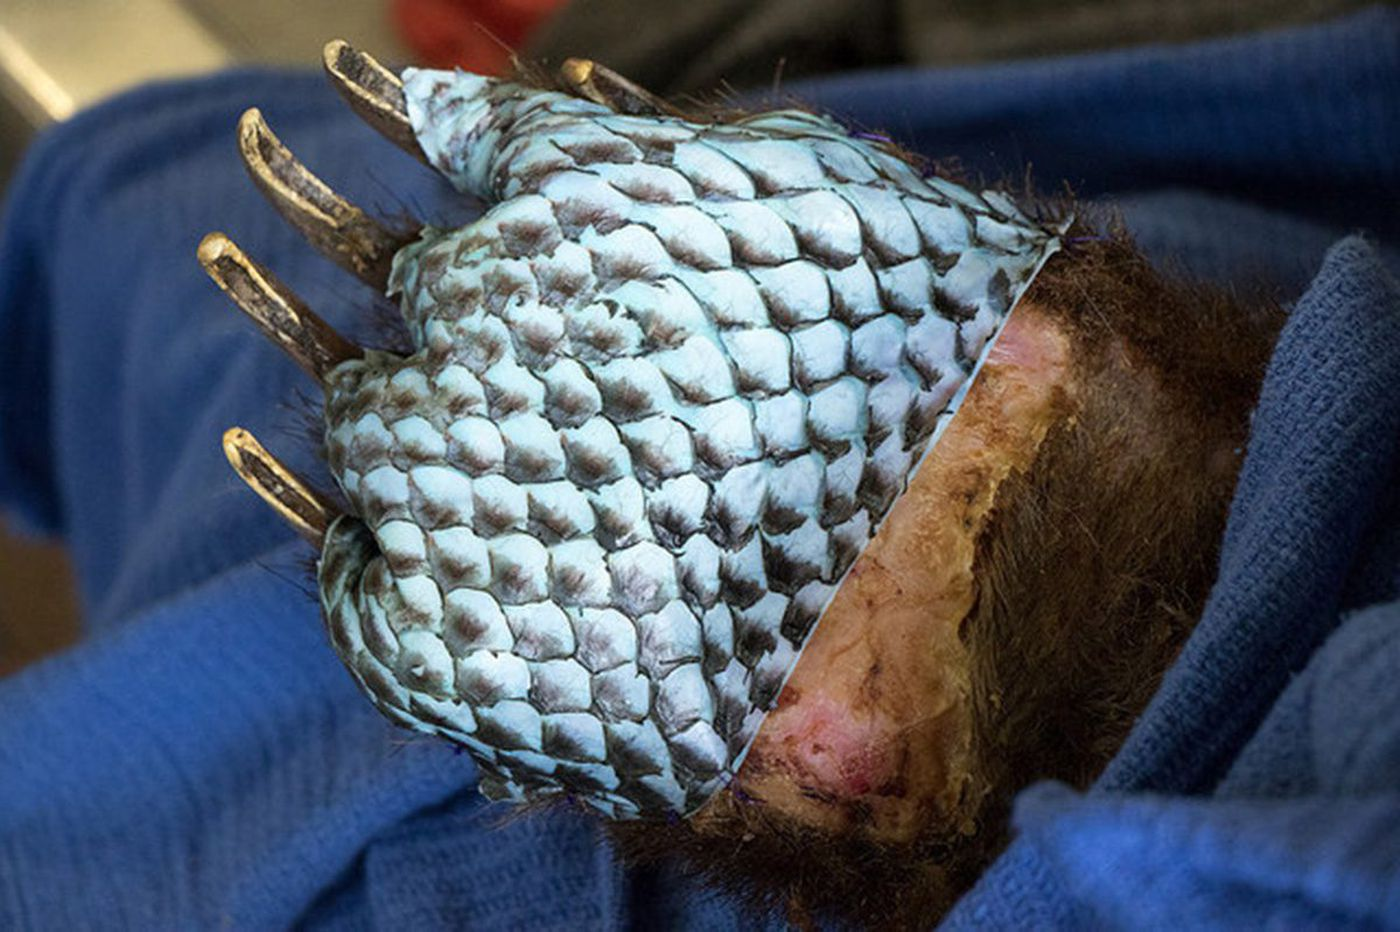 Two bears were badly burned in wildfires, and fish skin helped heal them